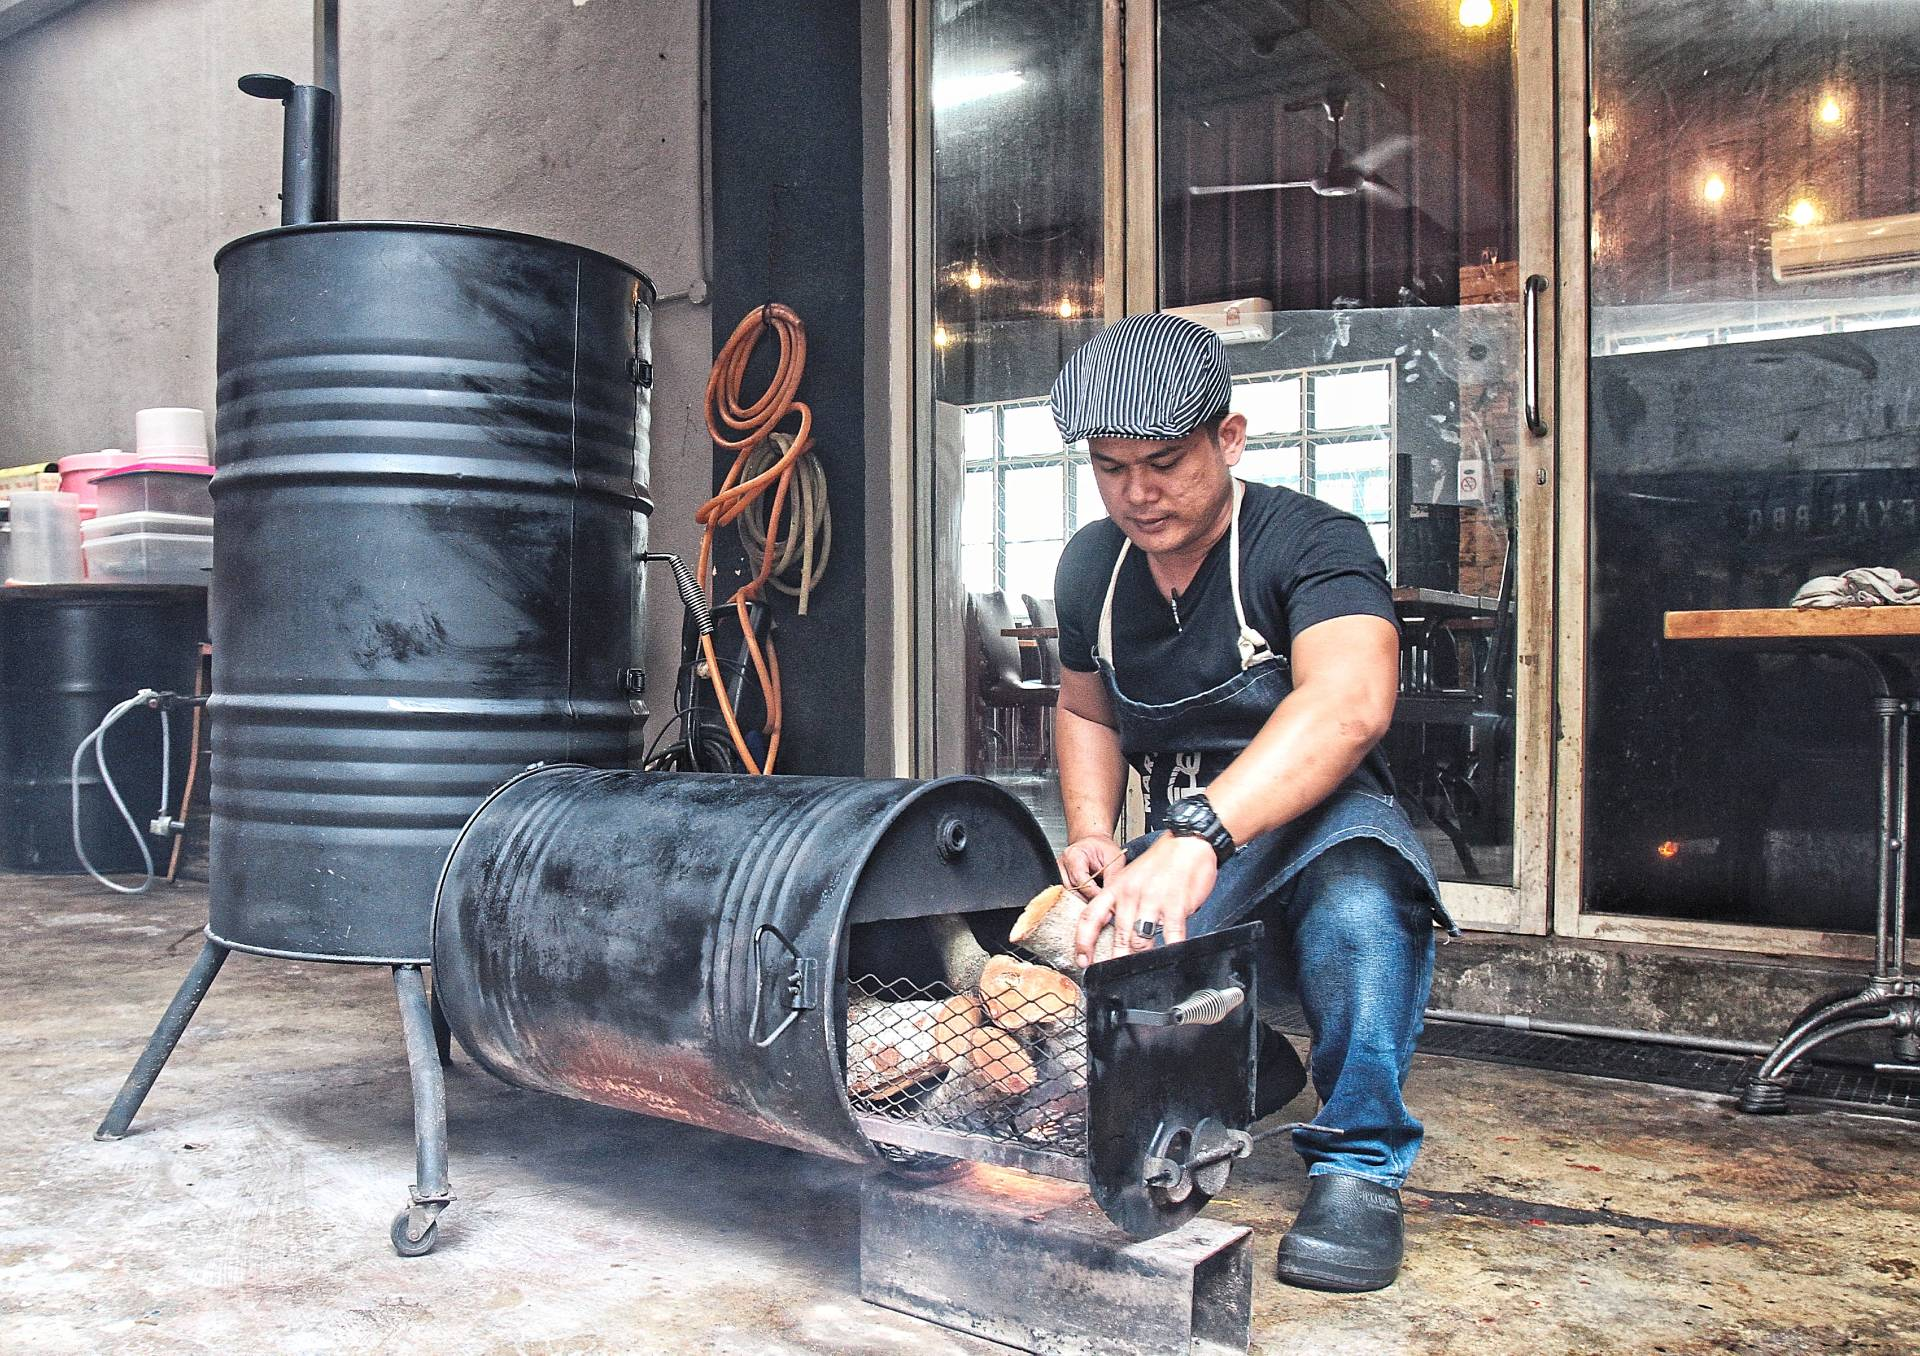 Arizal fashioned his smoker himself with recycled materials and uses local wood to fuel it.